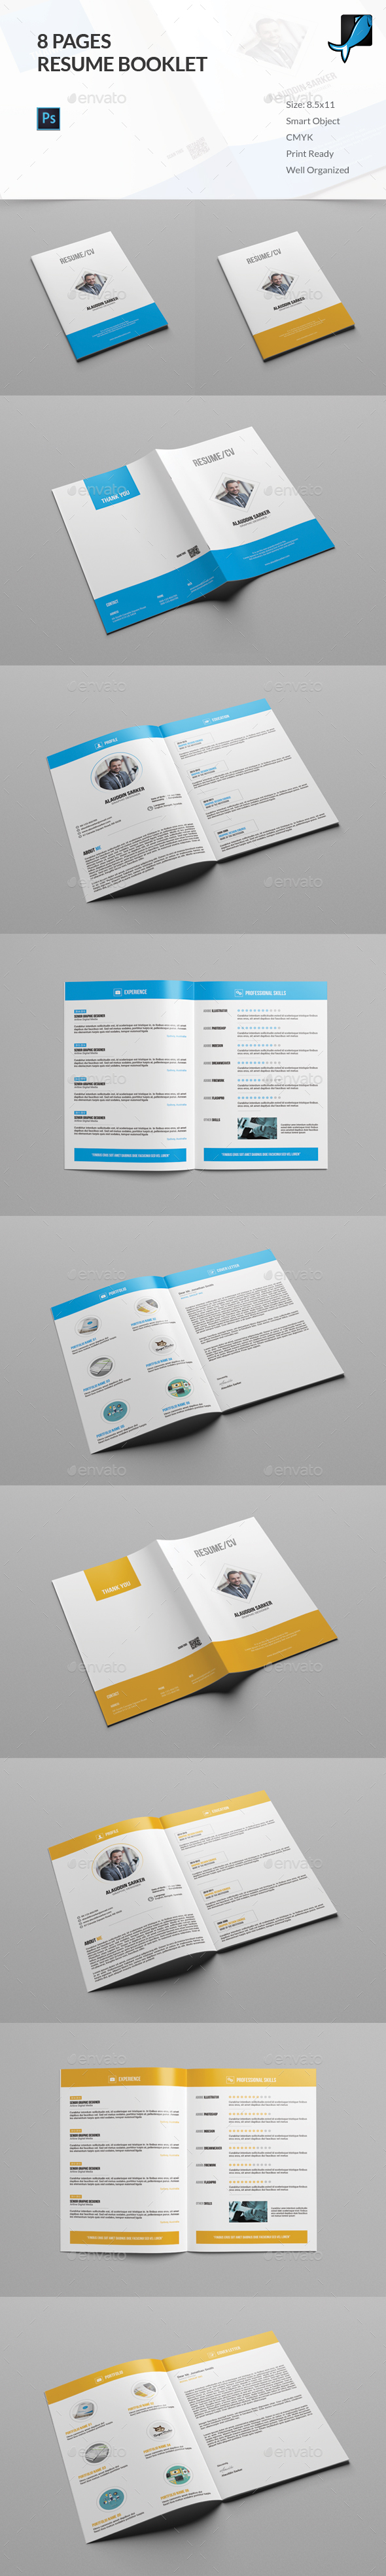 Resume Booklet Graphics, Designs & Templates from GraphicRiver